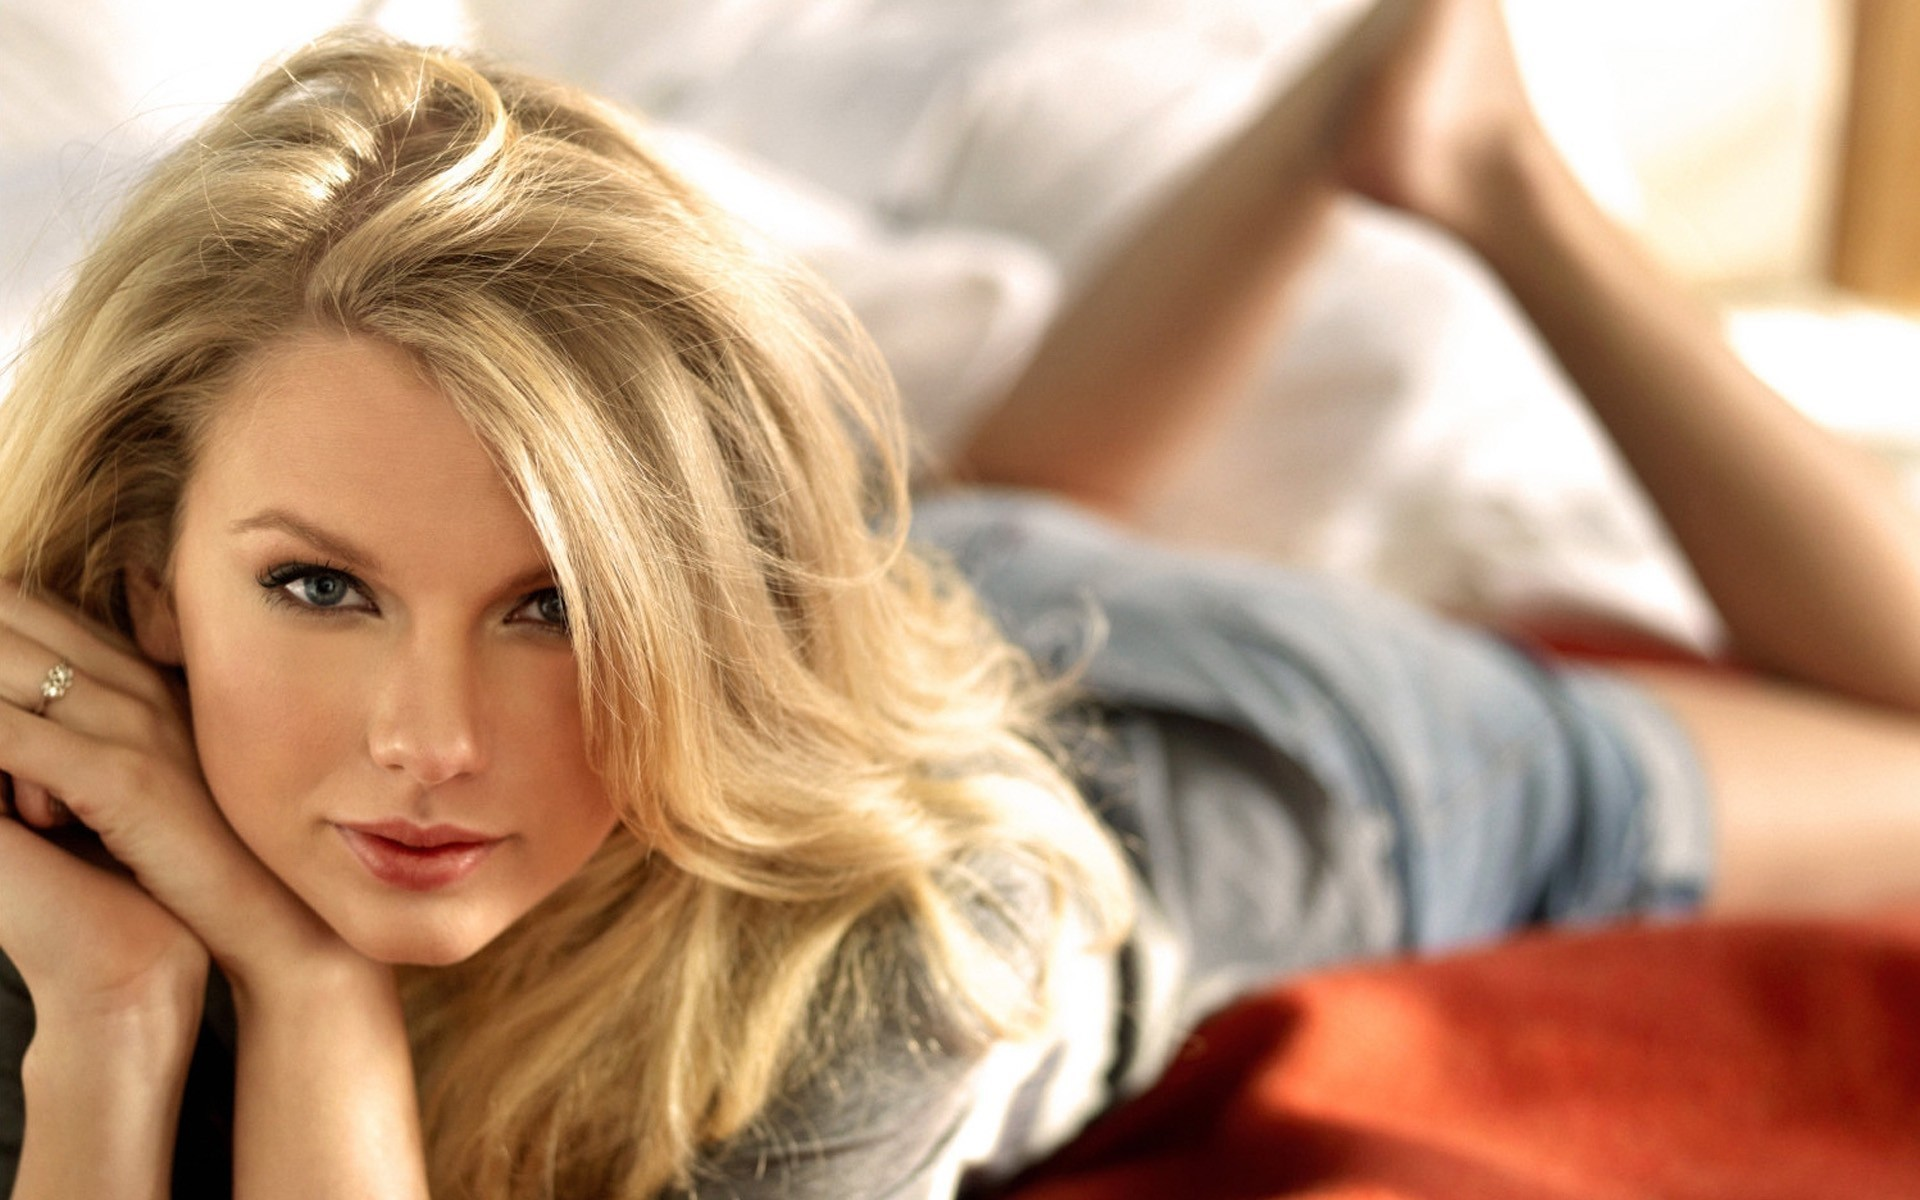 laying on bed Taylor-Swift-pictures